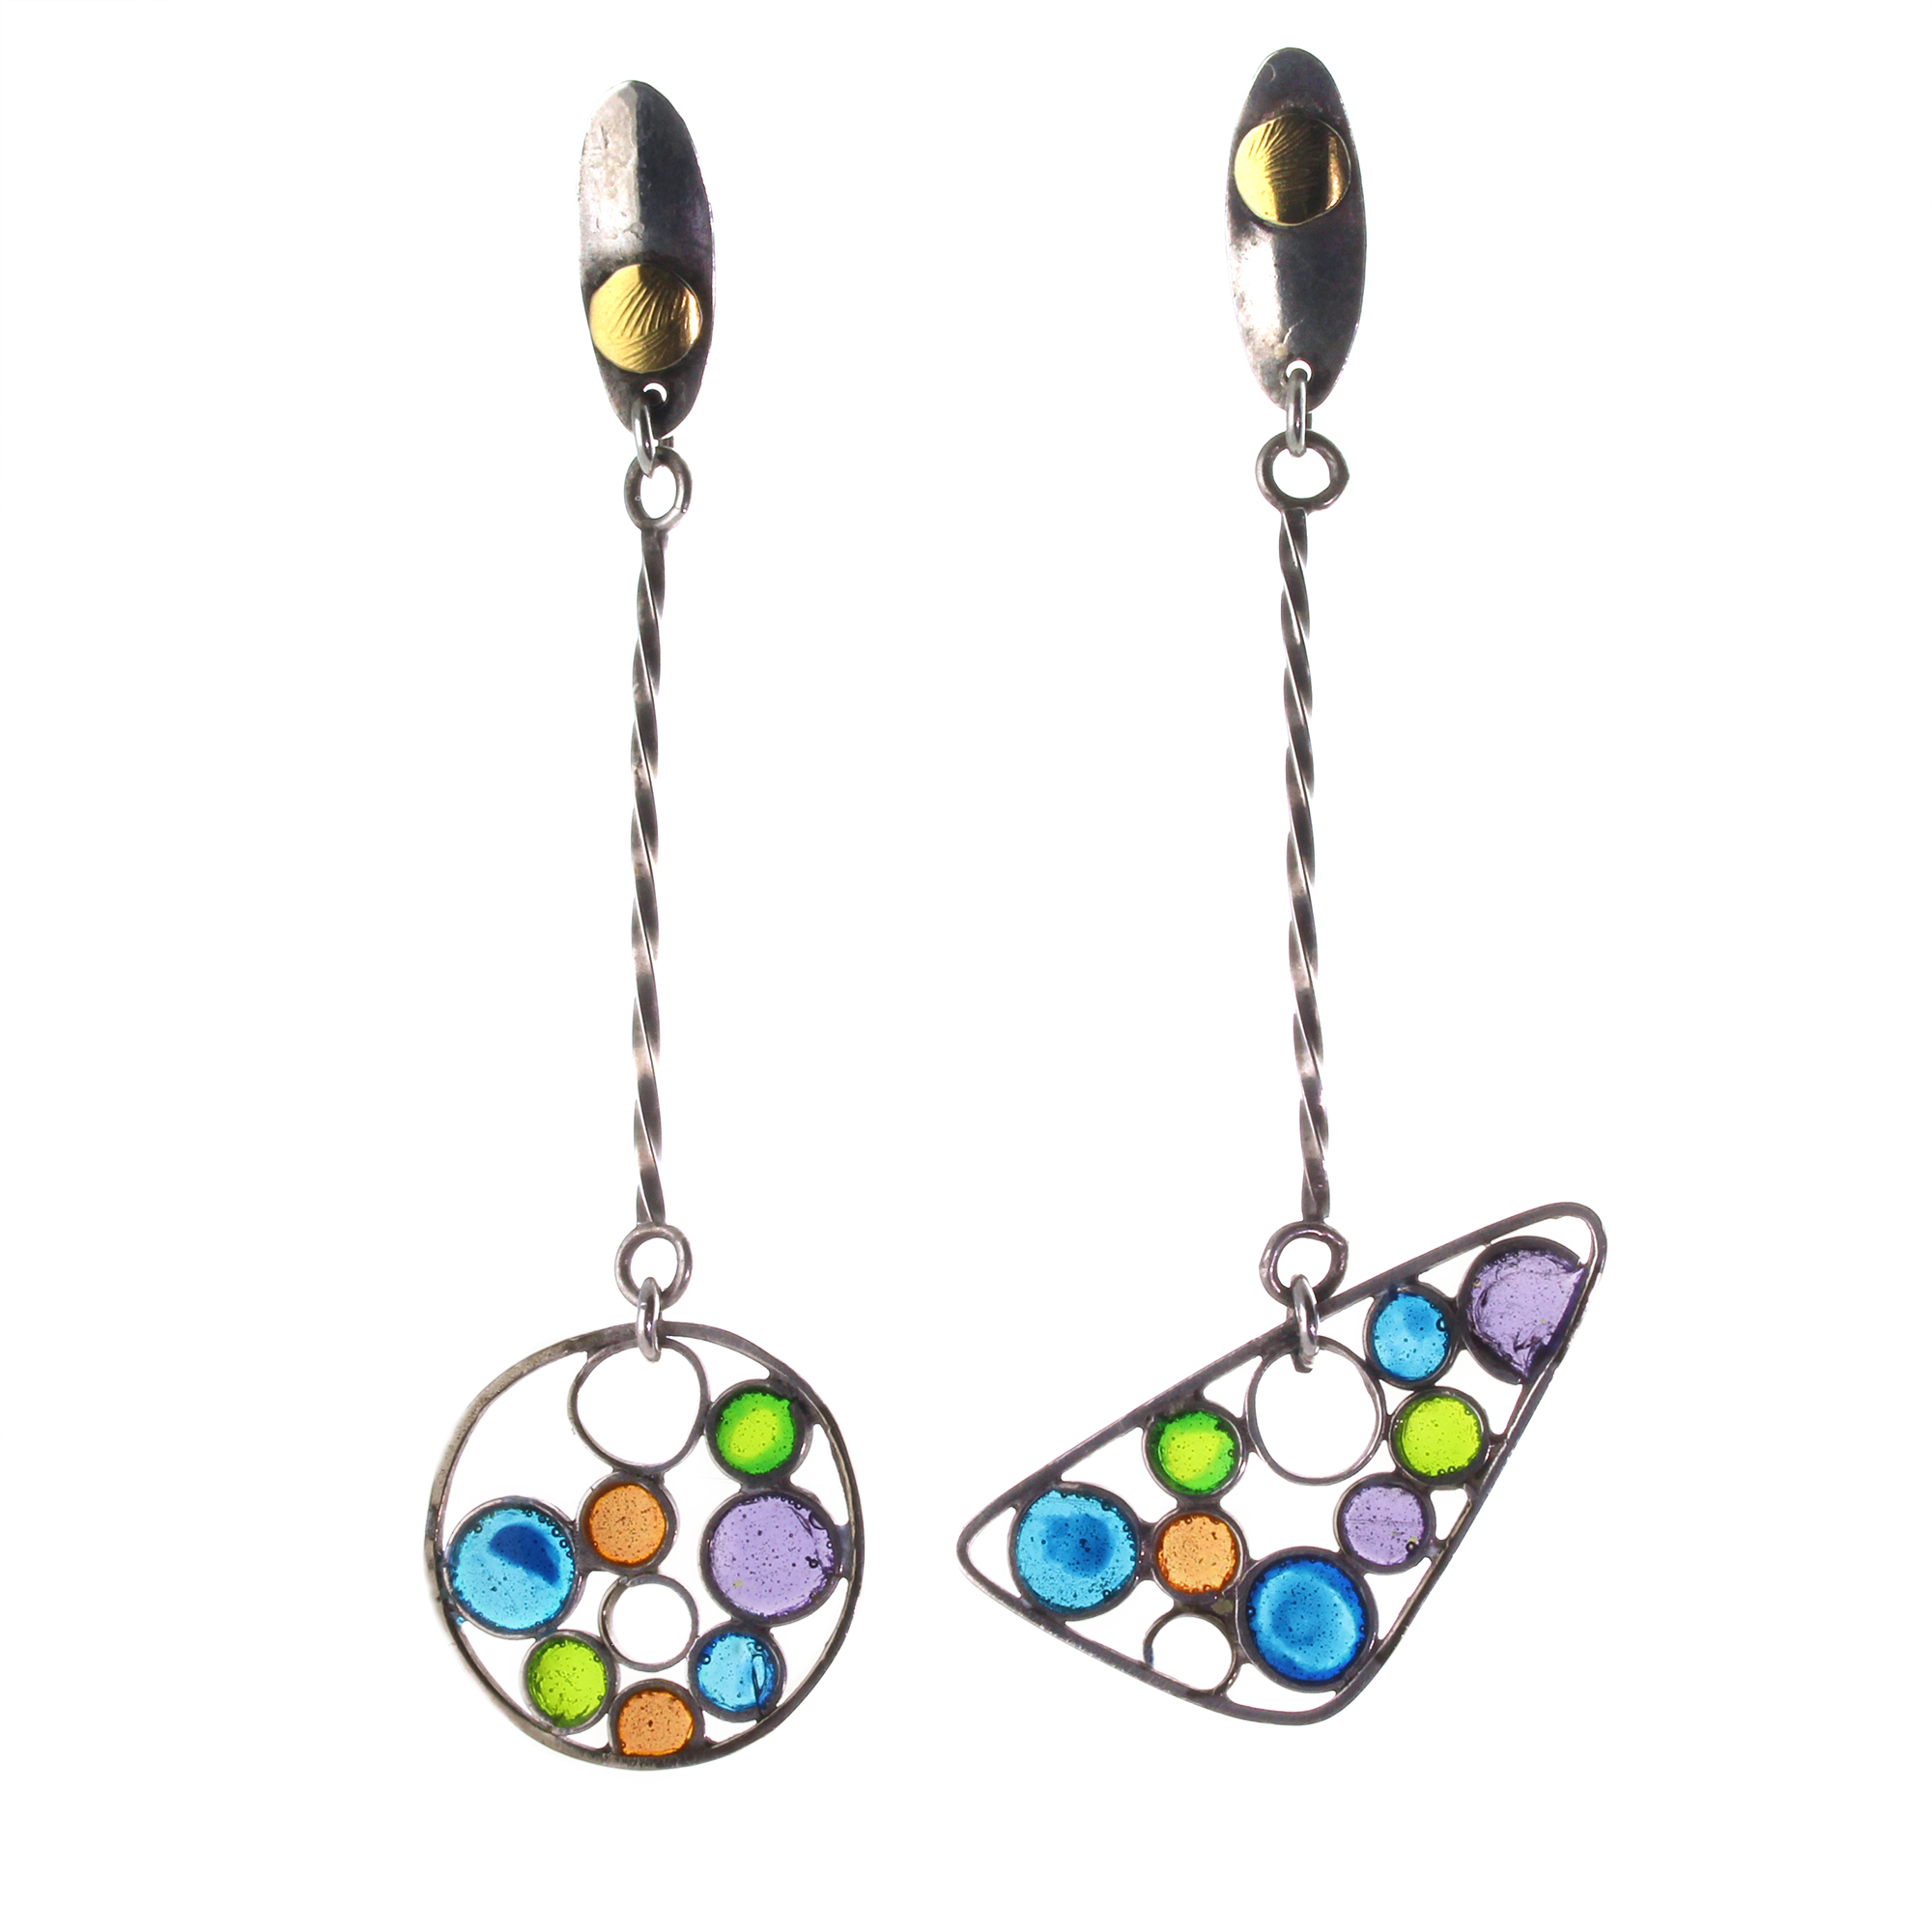 Circles Earrings, Lara Ginzburg